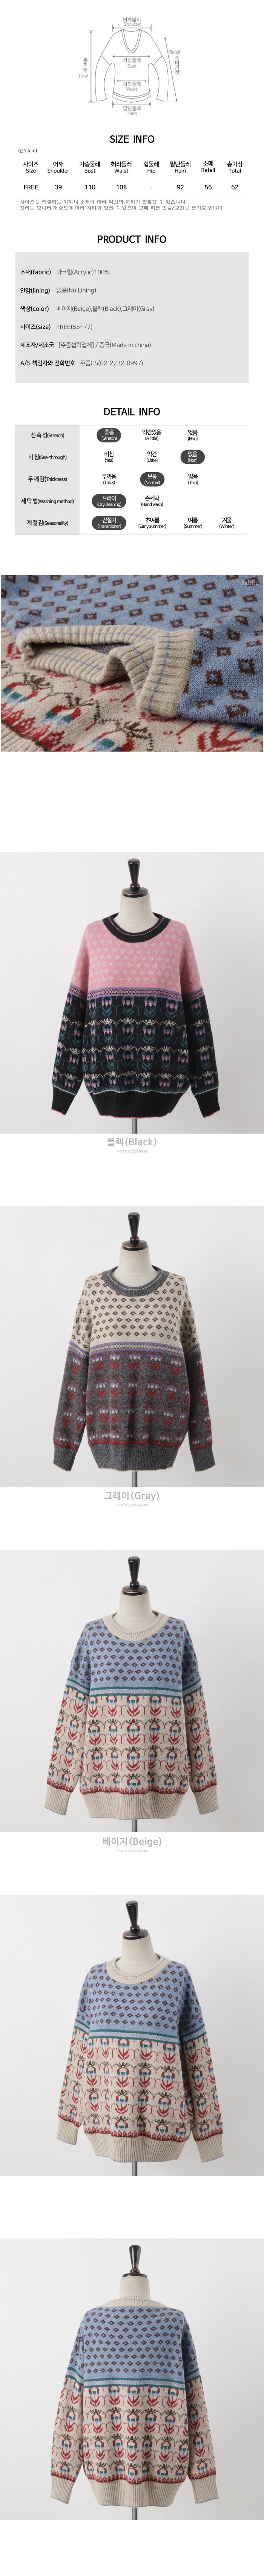 Zoozoom Diamond Color Jacquard Knit Color Black Size Free Hktvmall Online Shopping